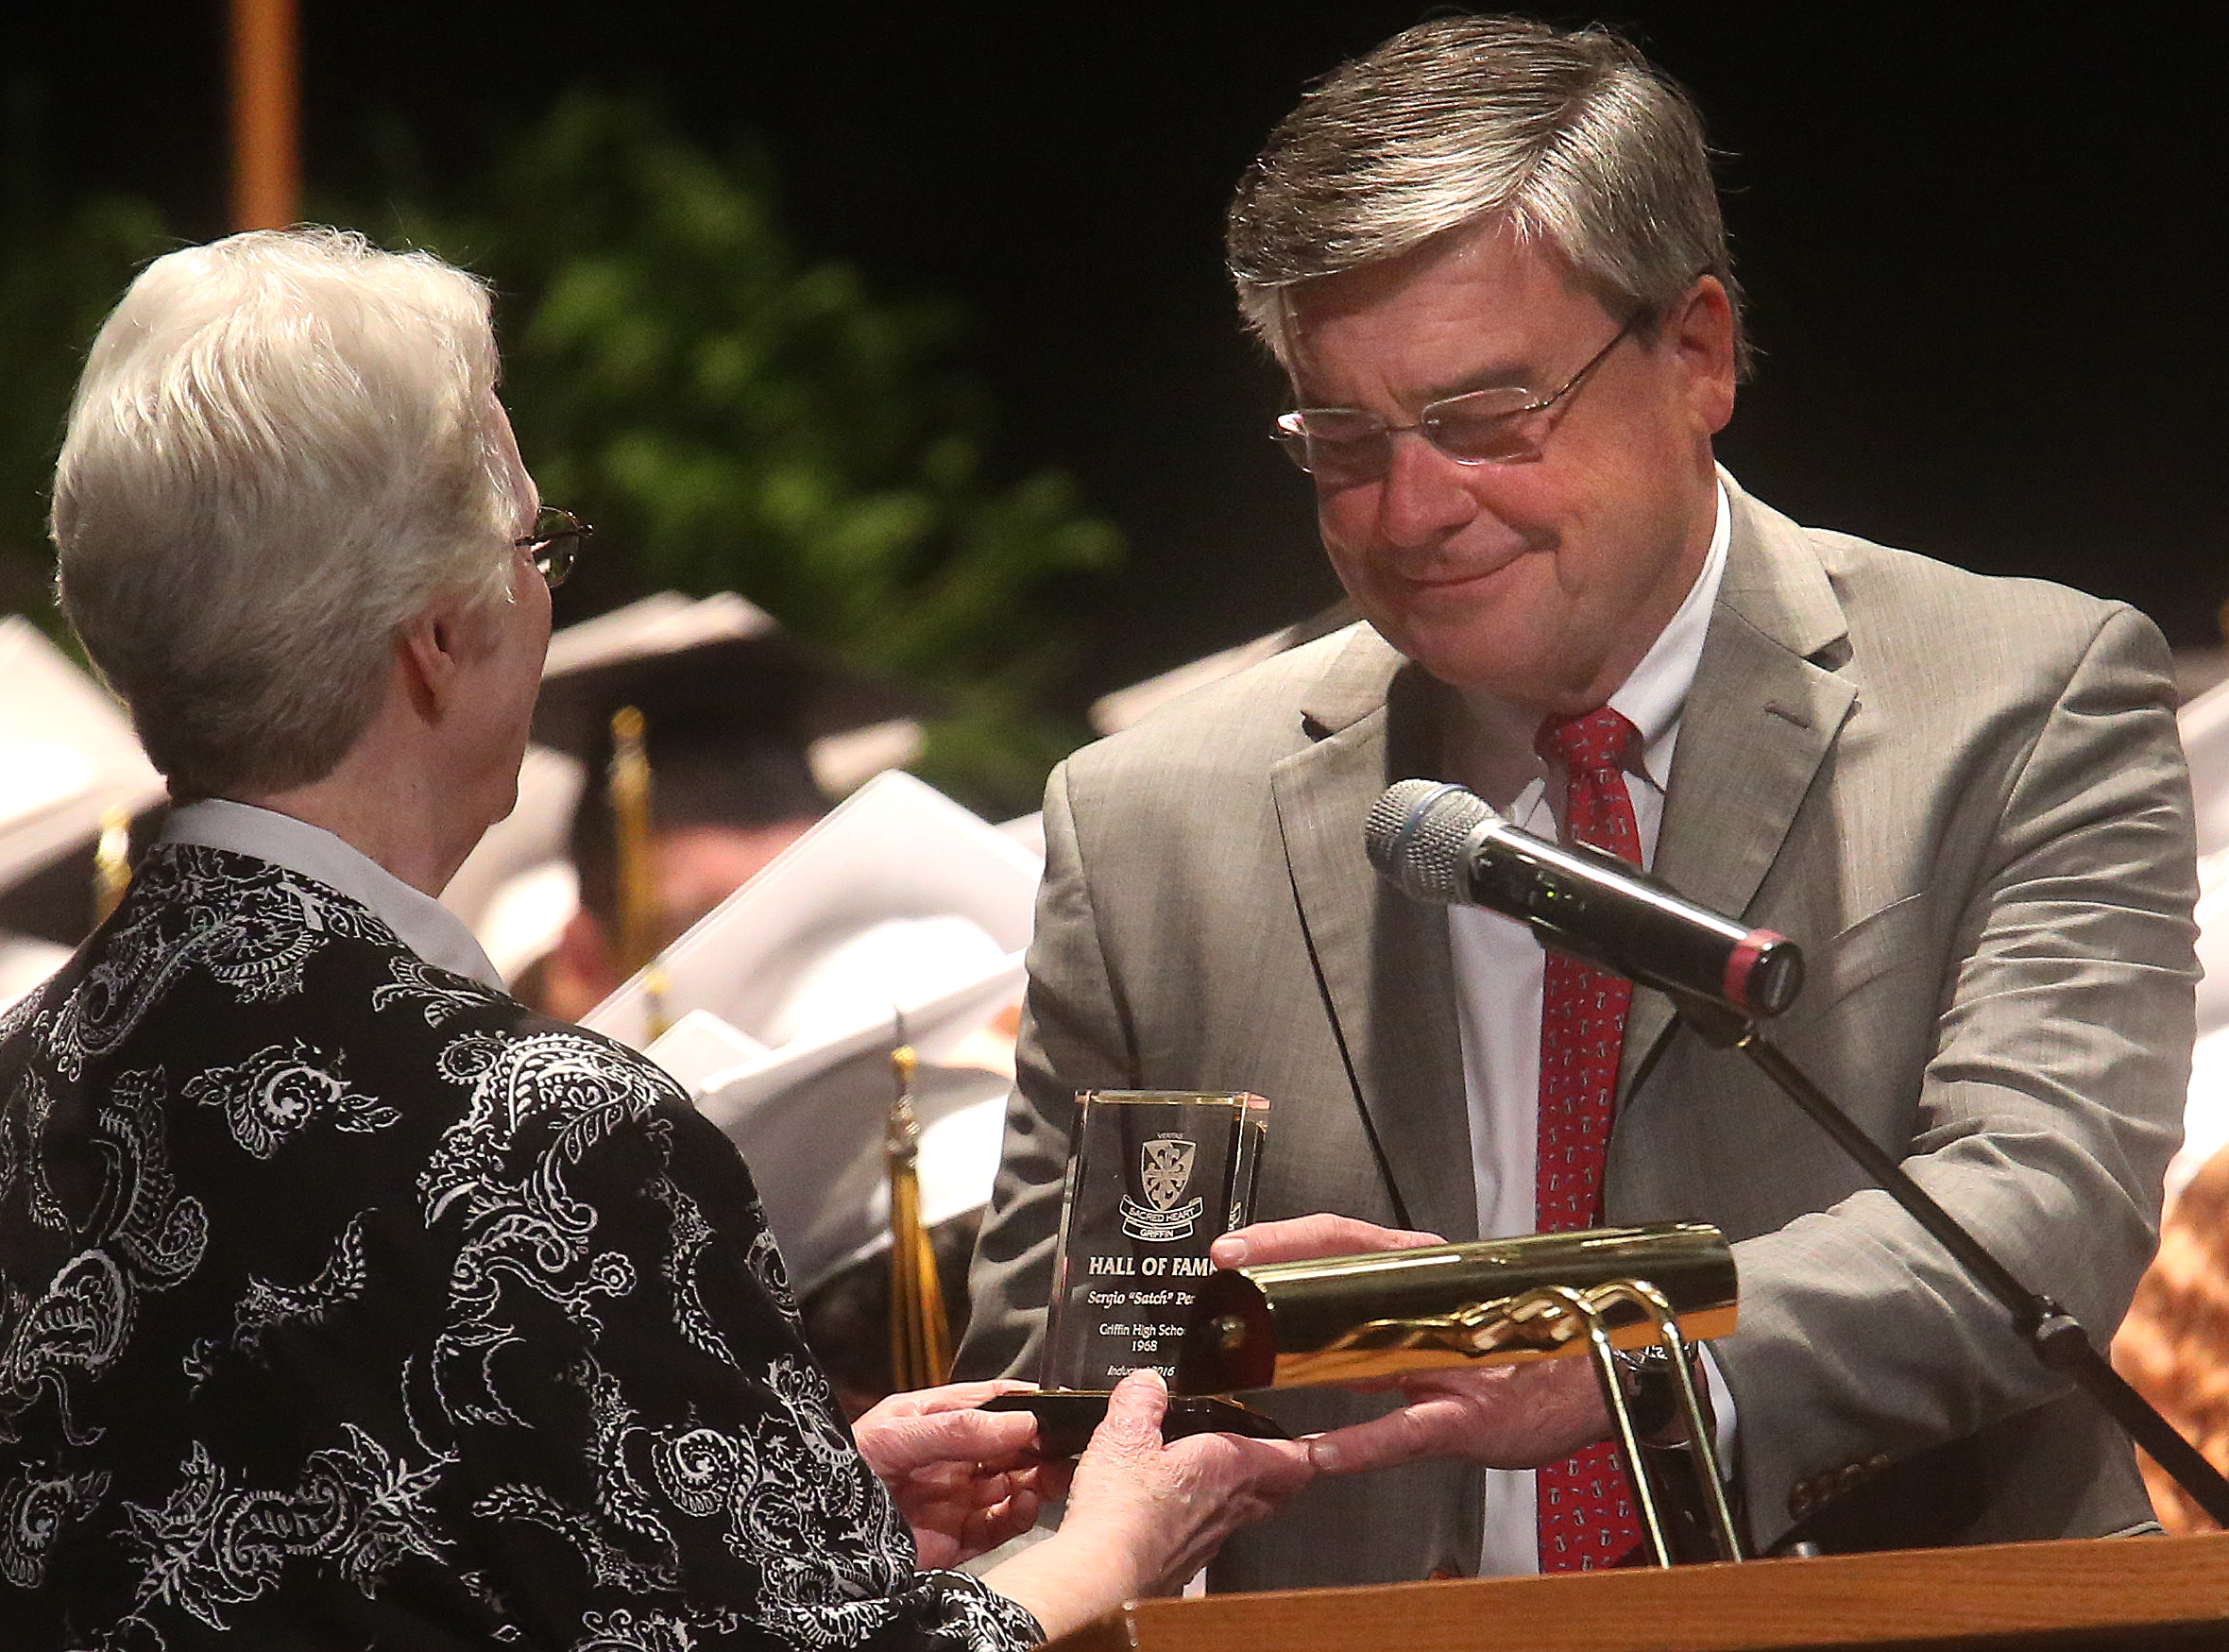 """Sergio """"Satch"""" Pecori, a graduate of Griffin High School class of 1968, was inducted into the SHG Hall of Fame by Sister Katherine O'Connor on Sunday. David Spencer/The State Journal-Register"""